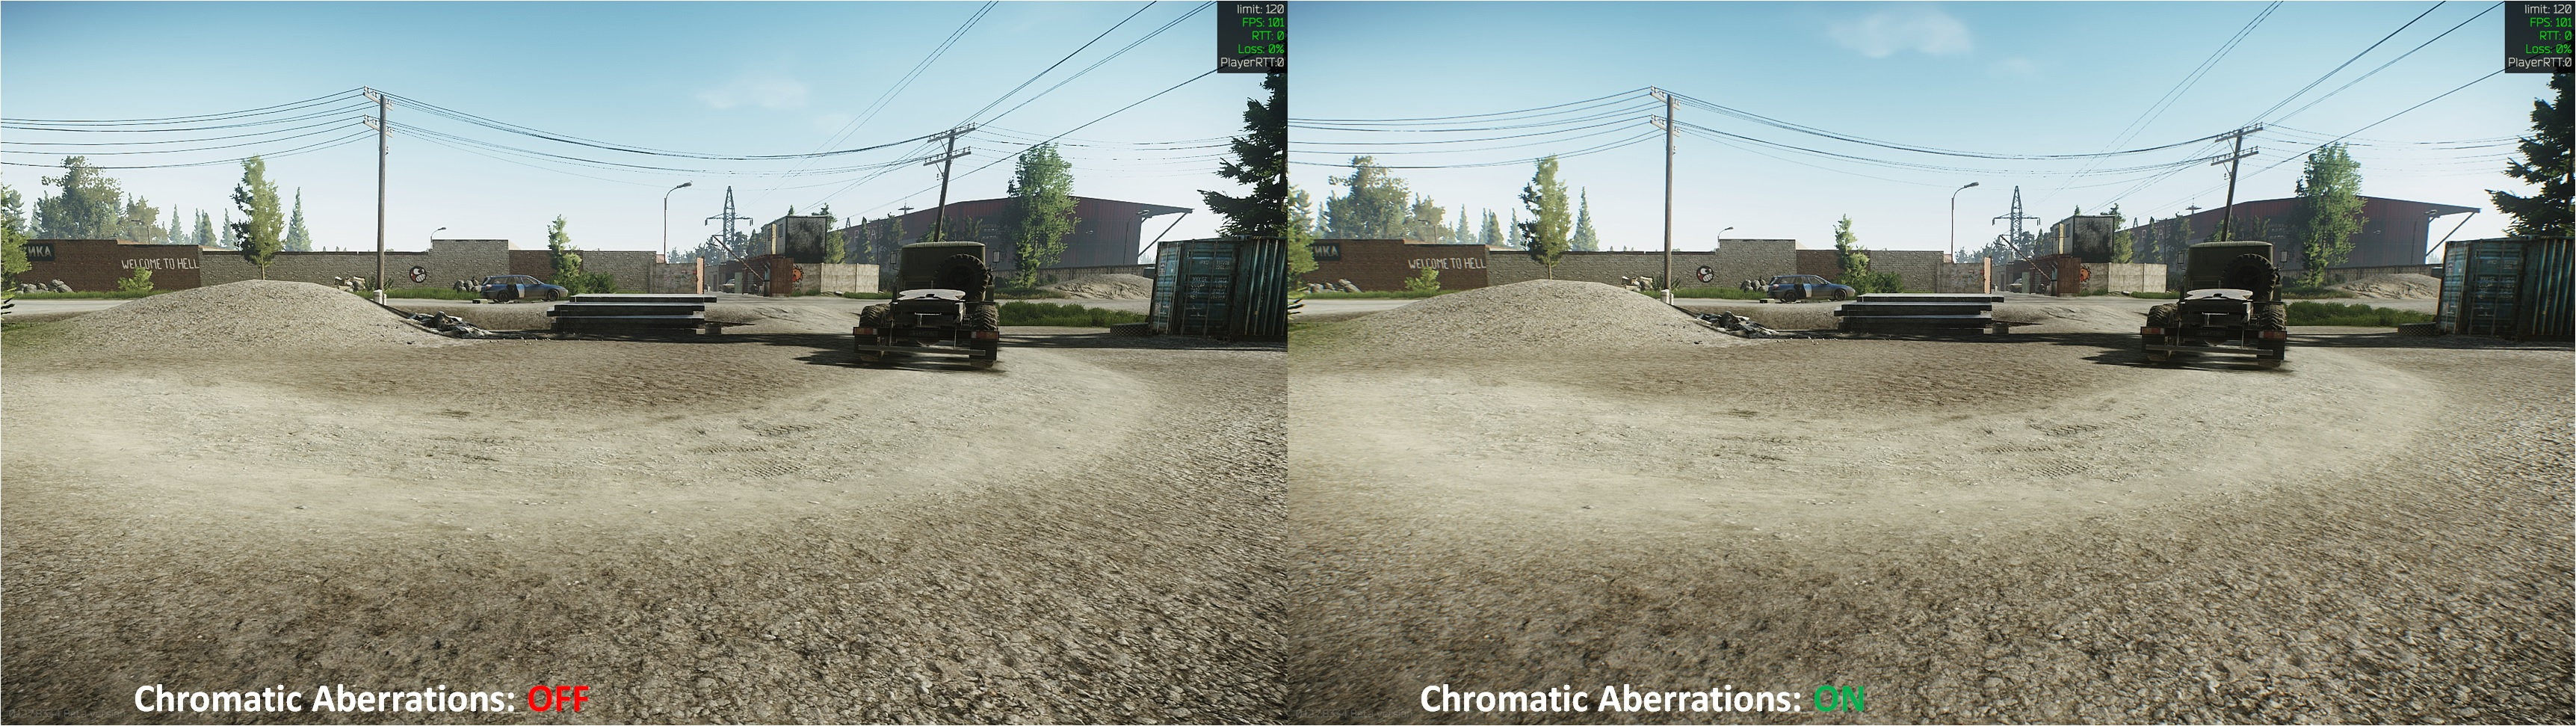 Tarkov Chromatic Aberrations Comparison